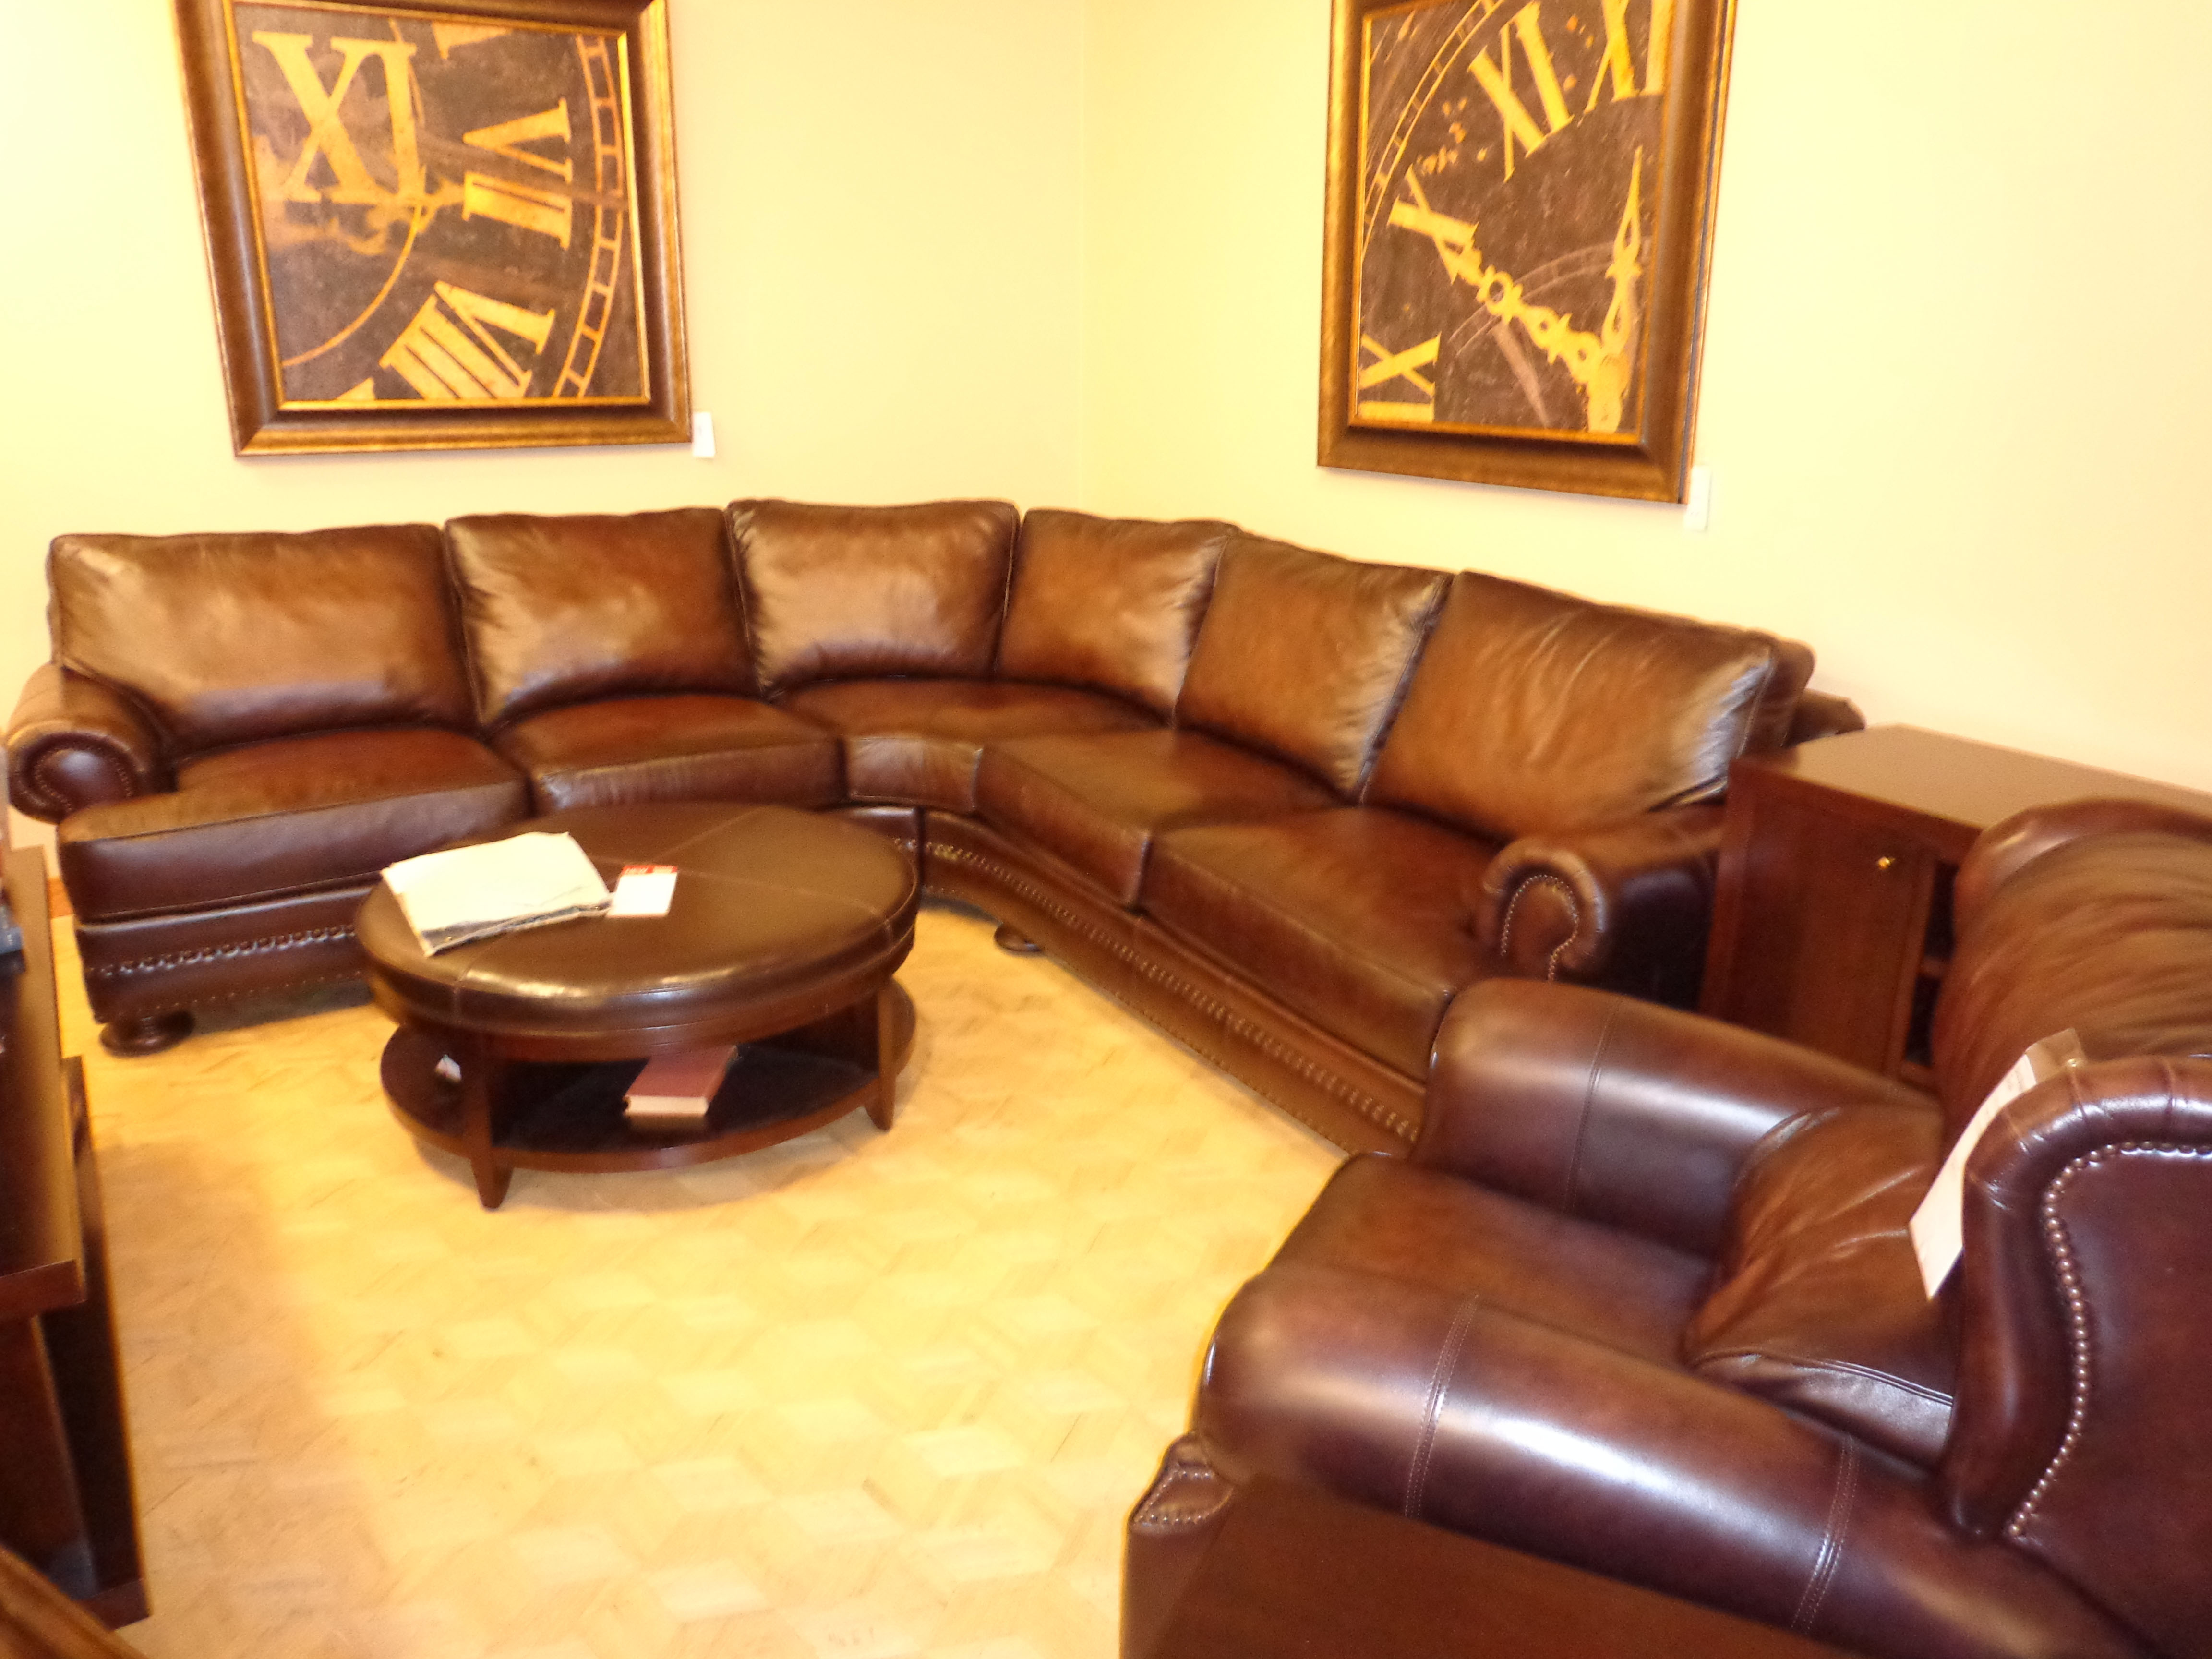 Dillards Leather Furniture Dillard 39 S Leather Sectional View Original